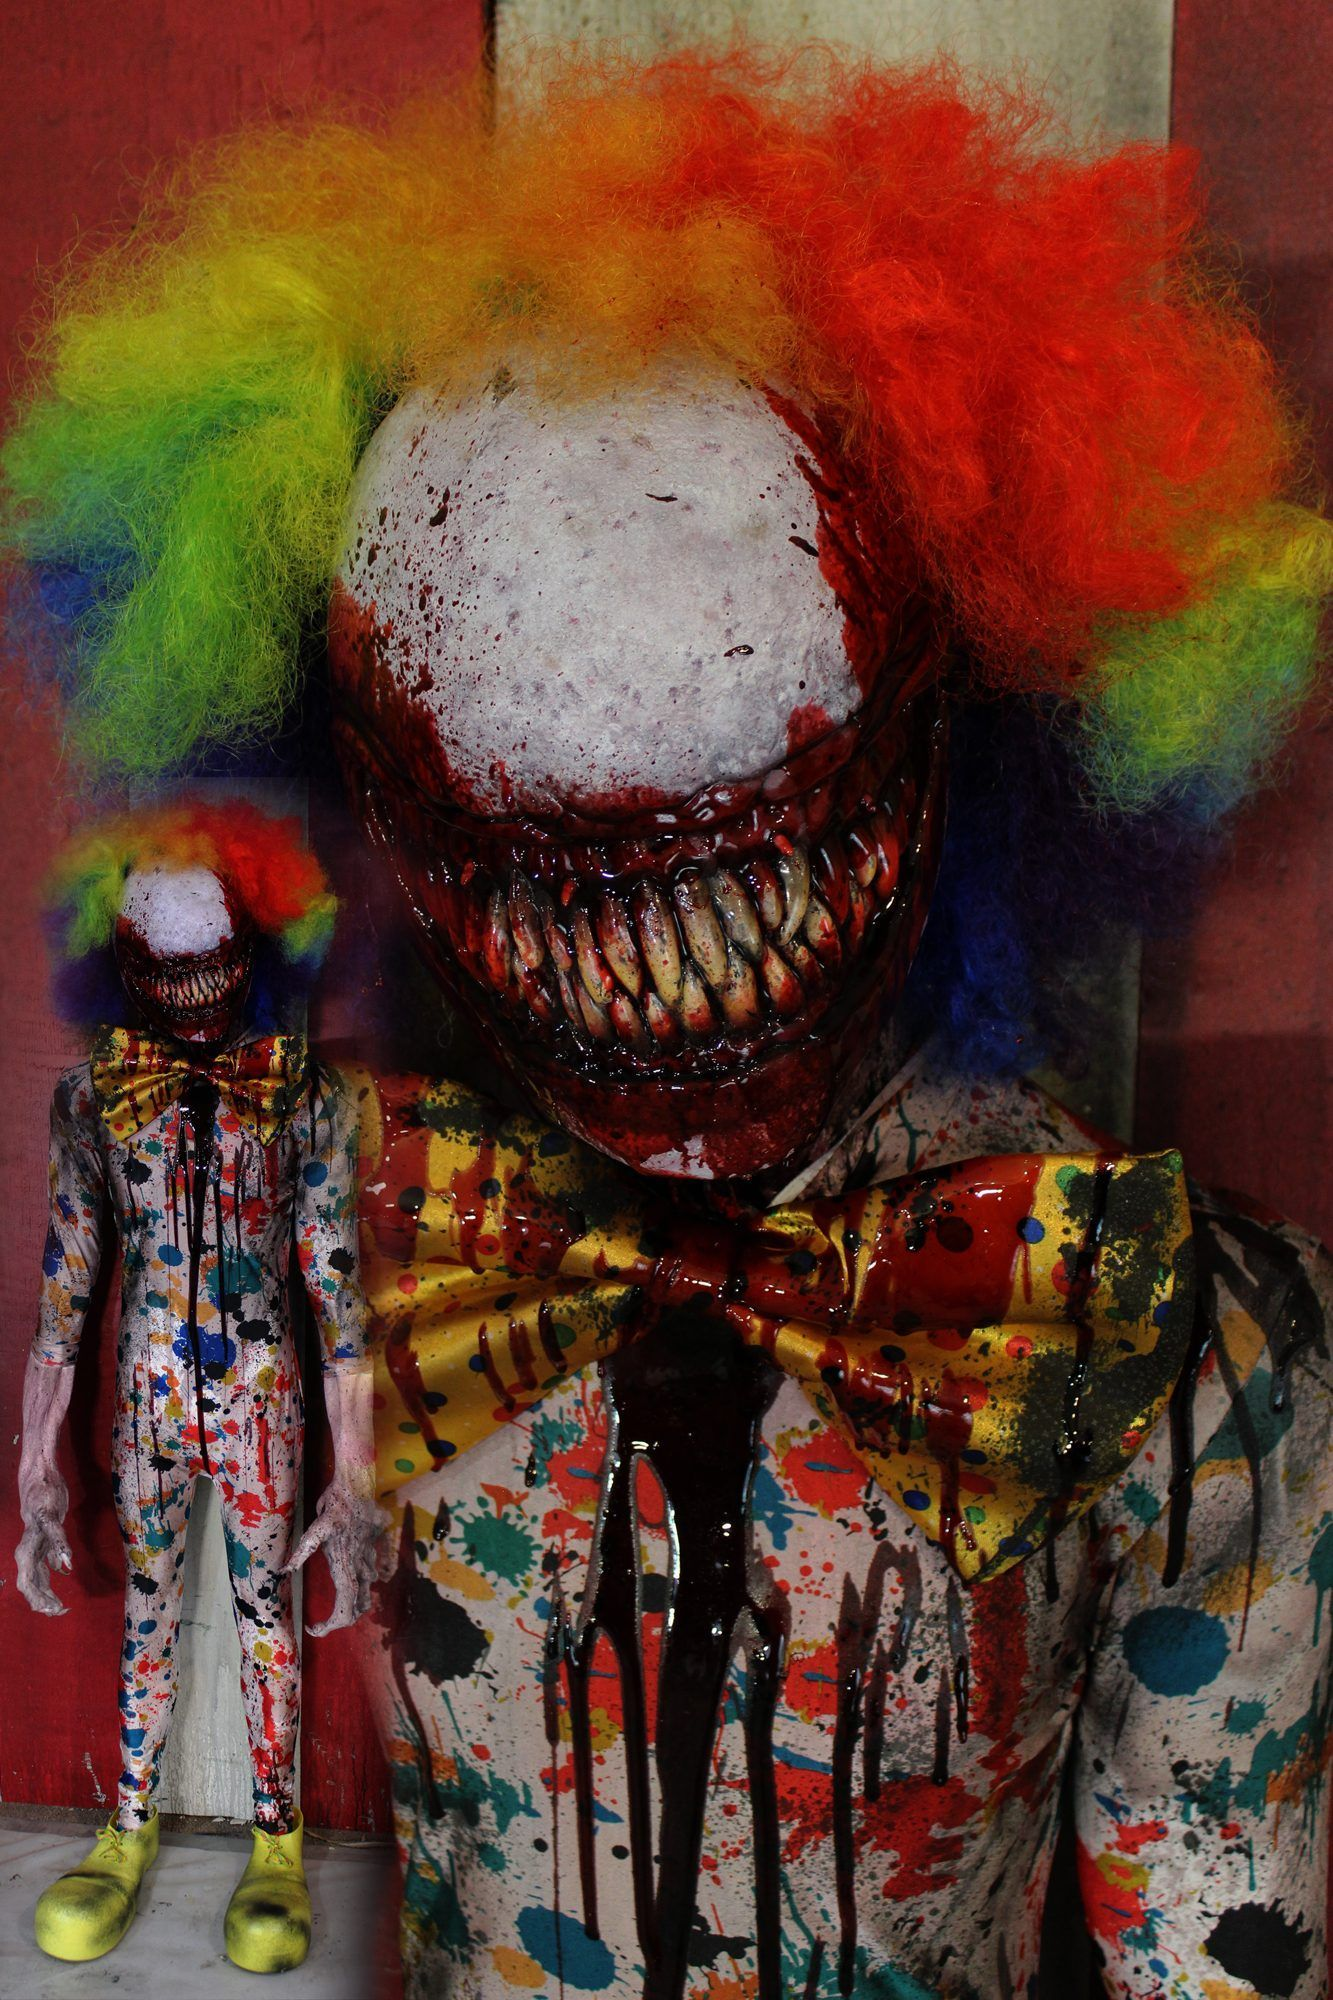 Creepycollection Props New 2017 Haunted House Halloween props - scary halloween decor